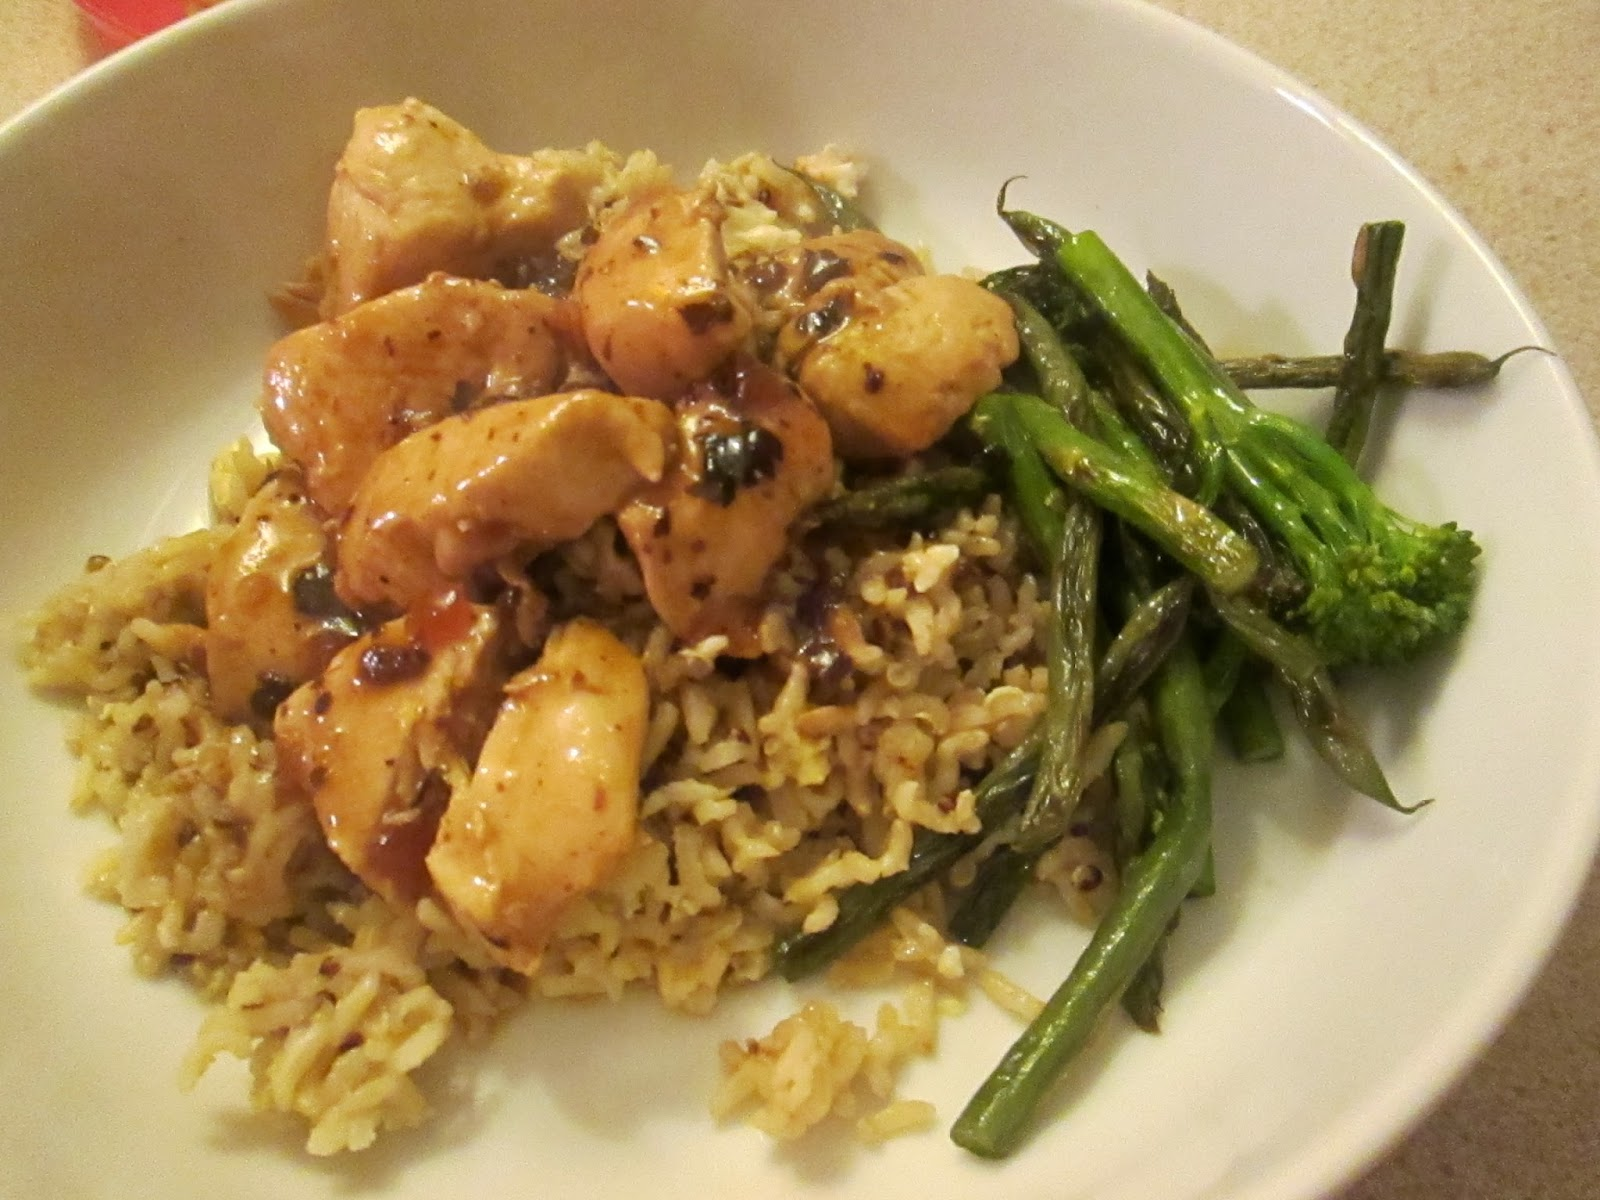 Chicken in black bean sauce with egg-fried brown rice and quinoa